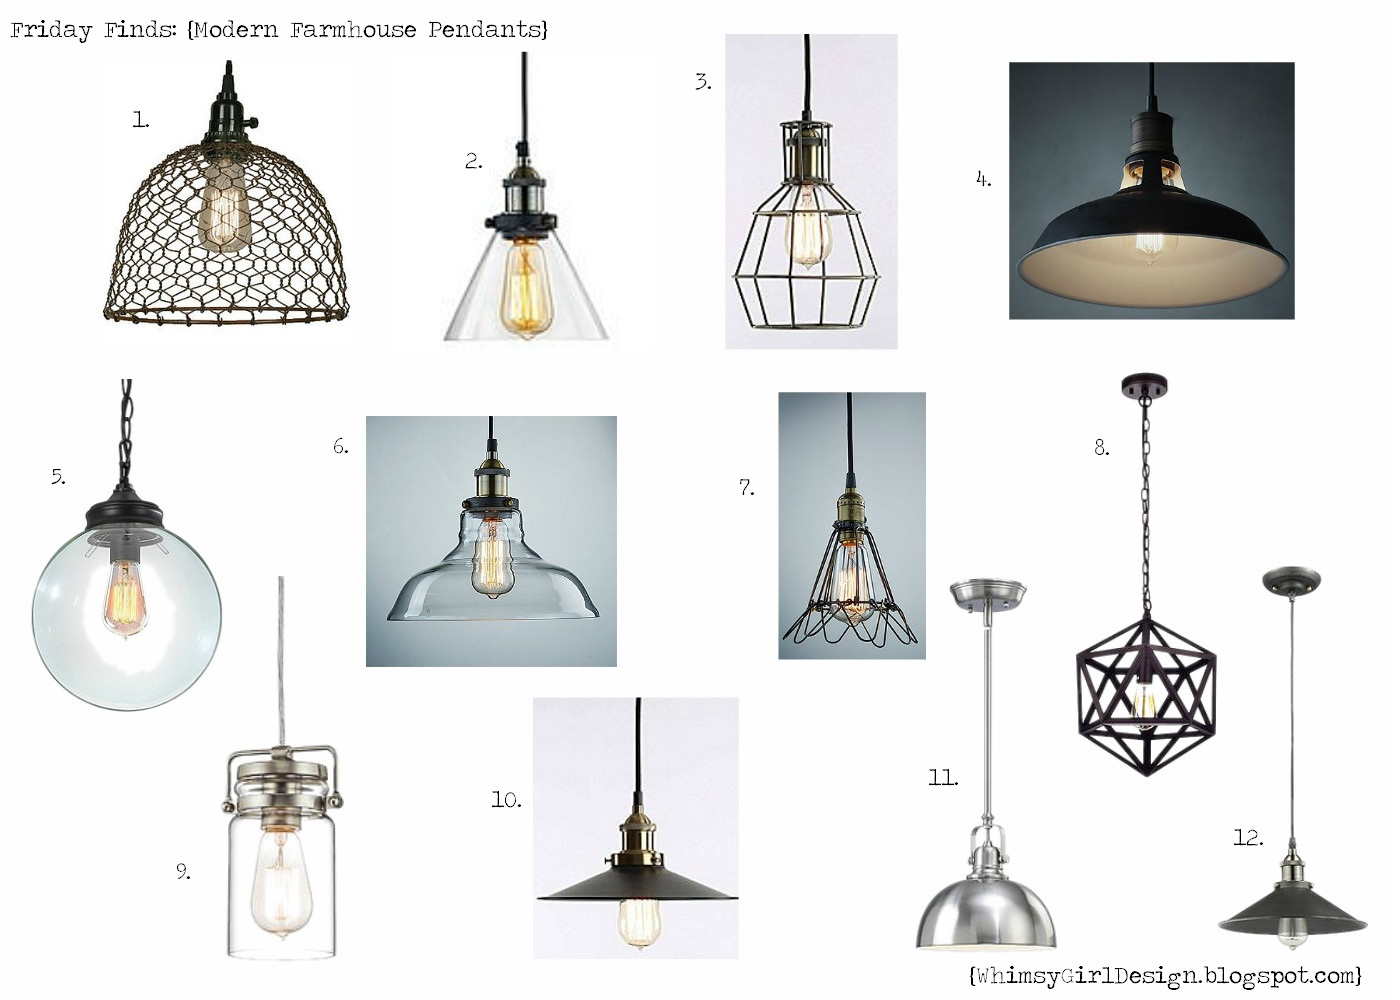 whimsy girl: Friday Finds: {Modern Farmhouse Pendant Lights}